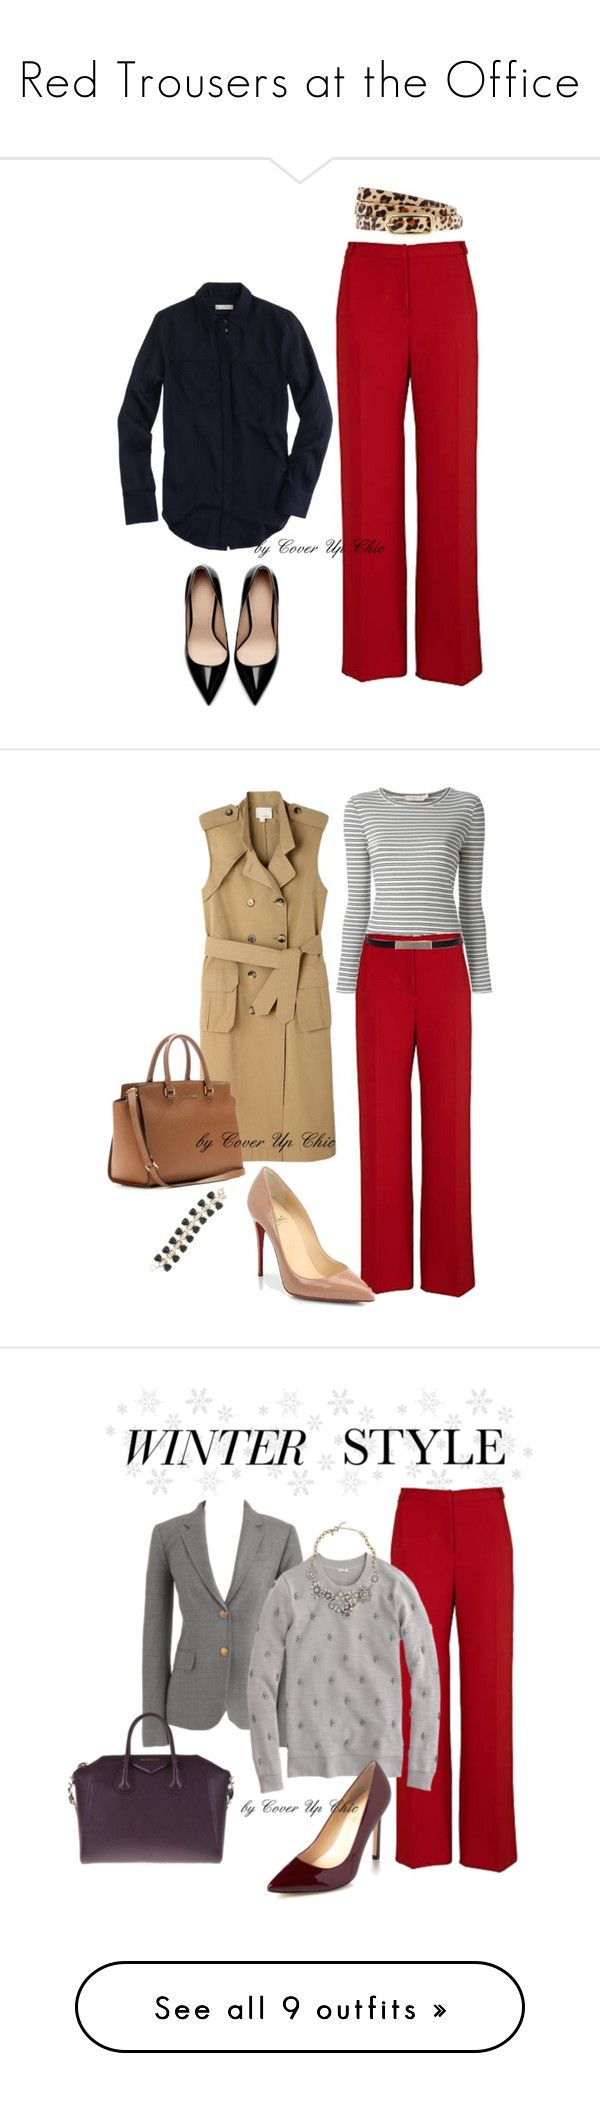 """Red Trousers at the Office"" by cover-up-chic on Polyvore featuring J.Crew, River Island, Zara, Tory Burch, Band of Outsiders, St. John, MICHAEL Michael Kors, Ivanka Trump, Givenchy and Kenneth Cole"